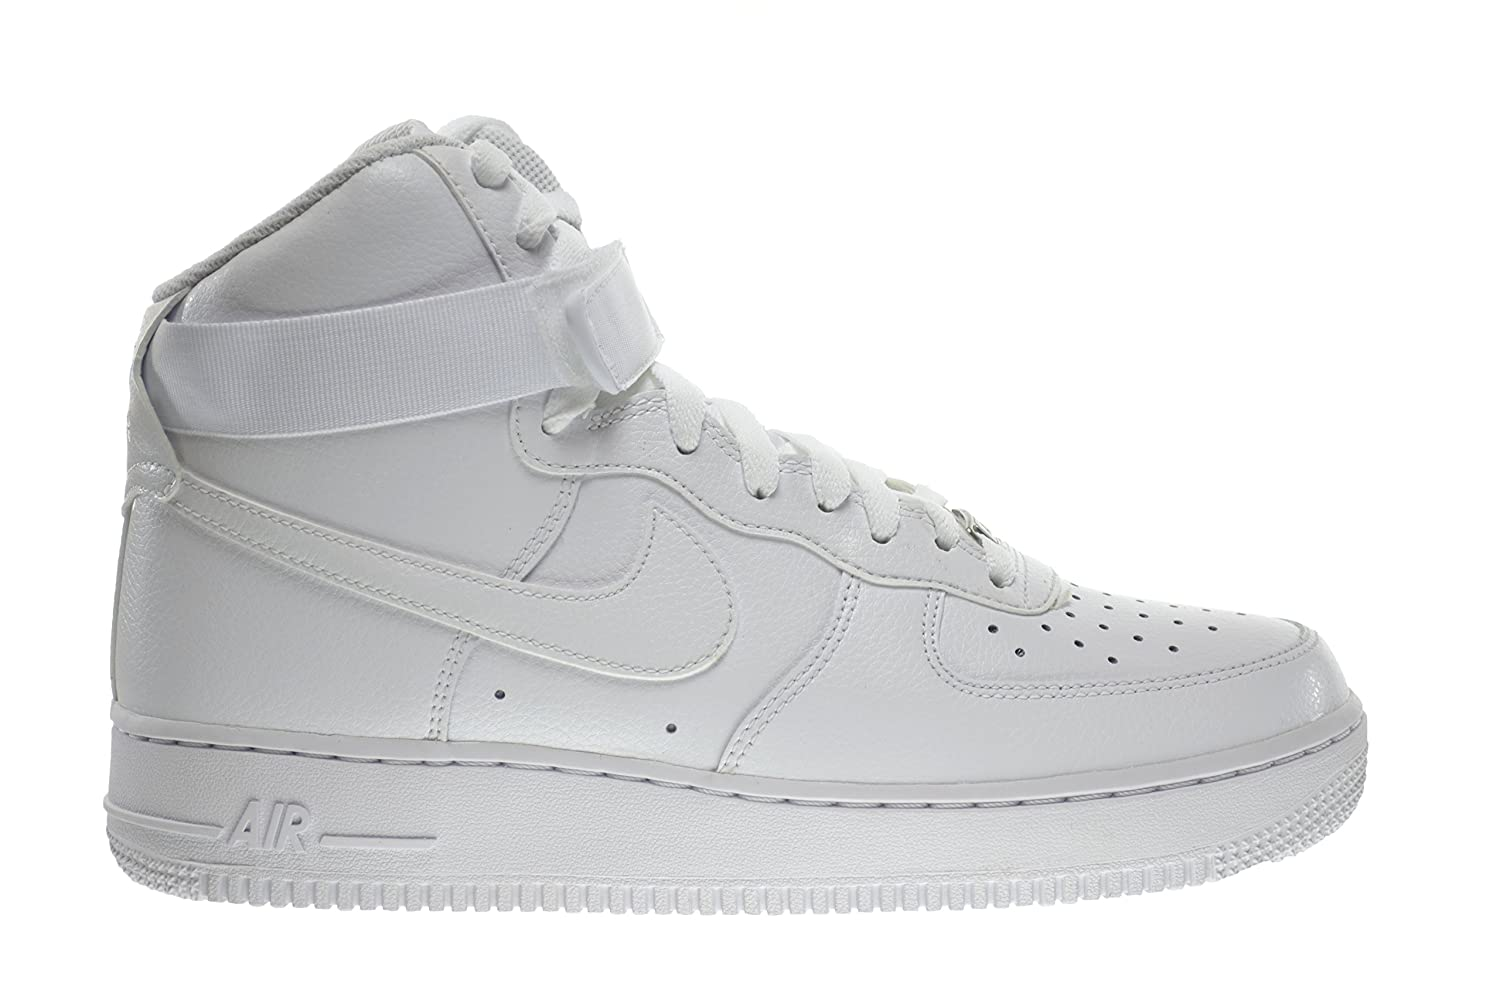 Nike Air Force 1 Haute Mens Collier Noir Et Blanc